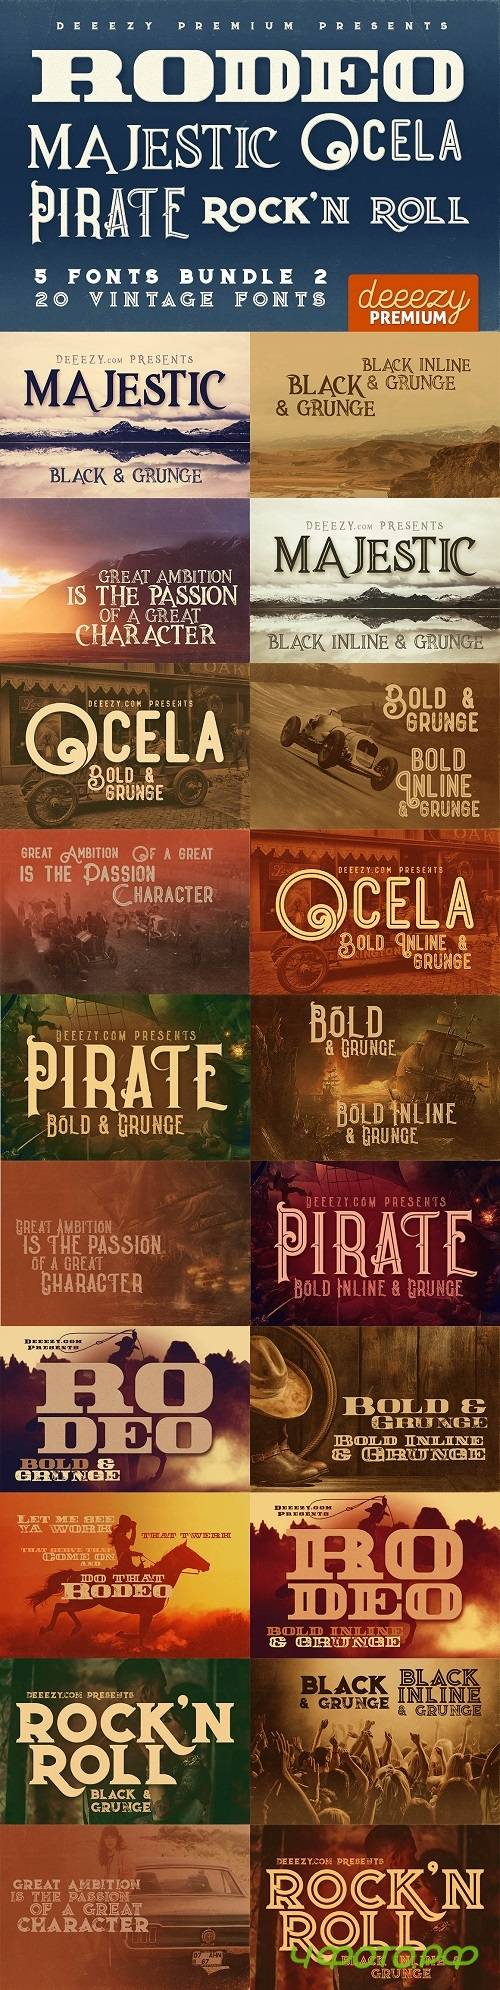 5 Fonts Bundle 2 - 1526201